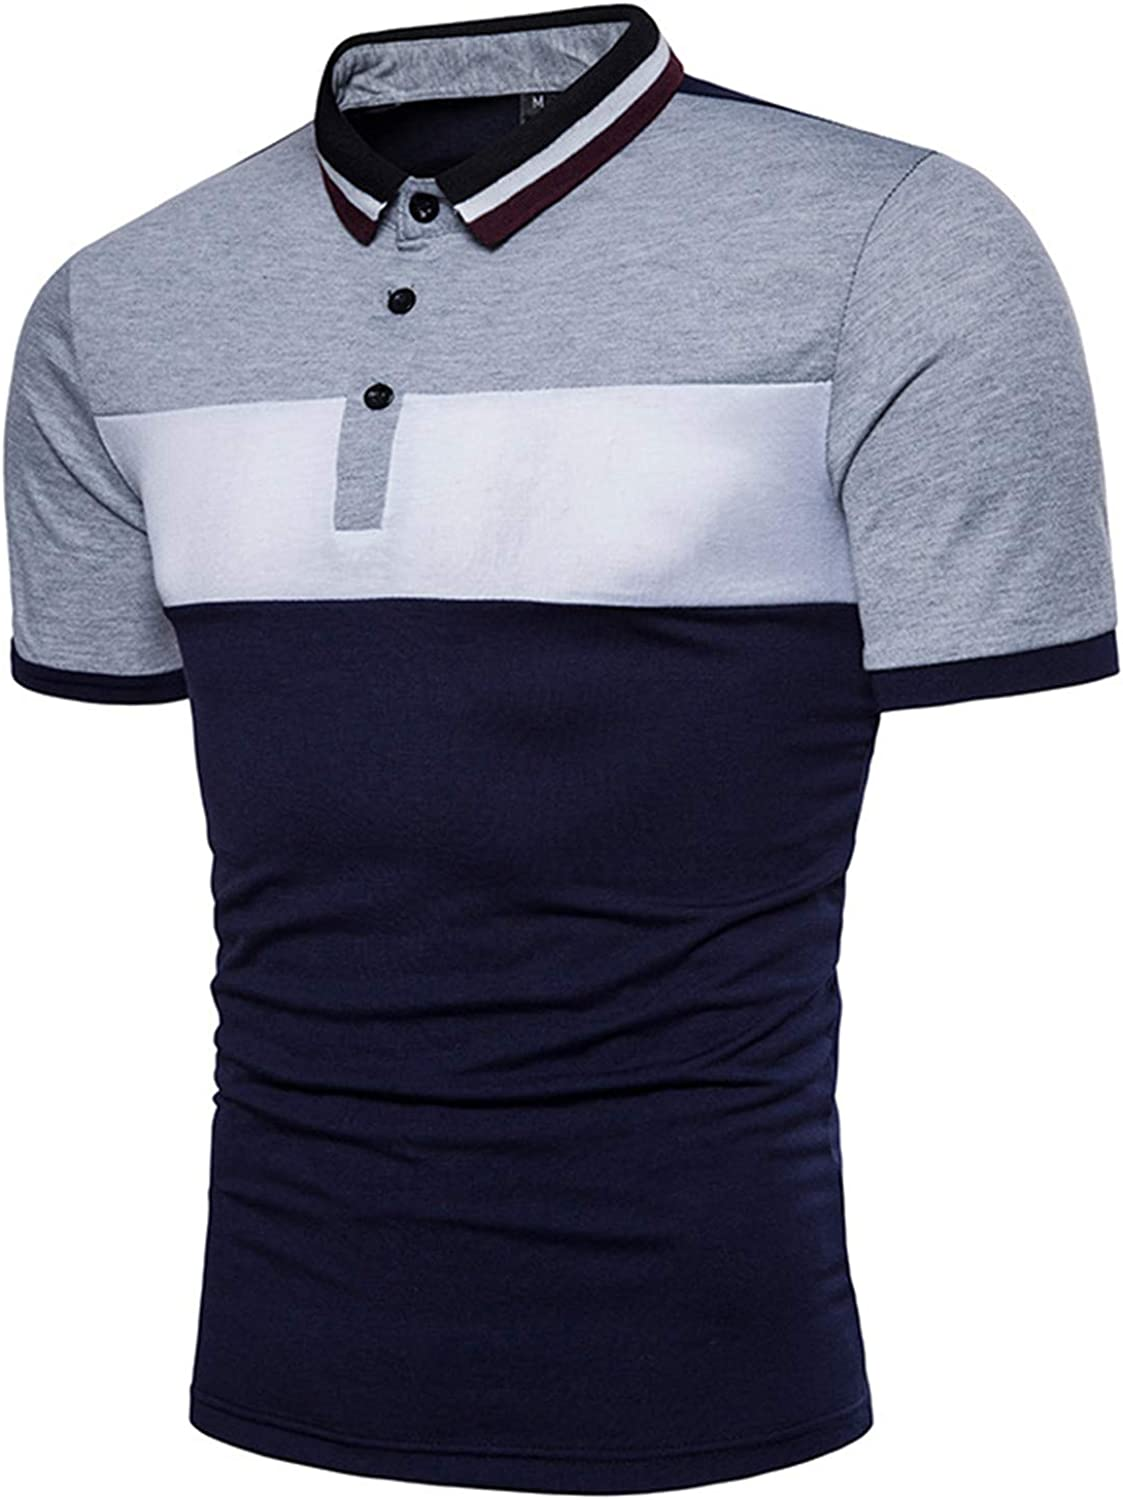 Fashion Summer Short Sleeve Polo Shirt Men Hit Slim Fit Camisa Polo Masculina Clothing Amazon Com